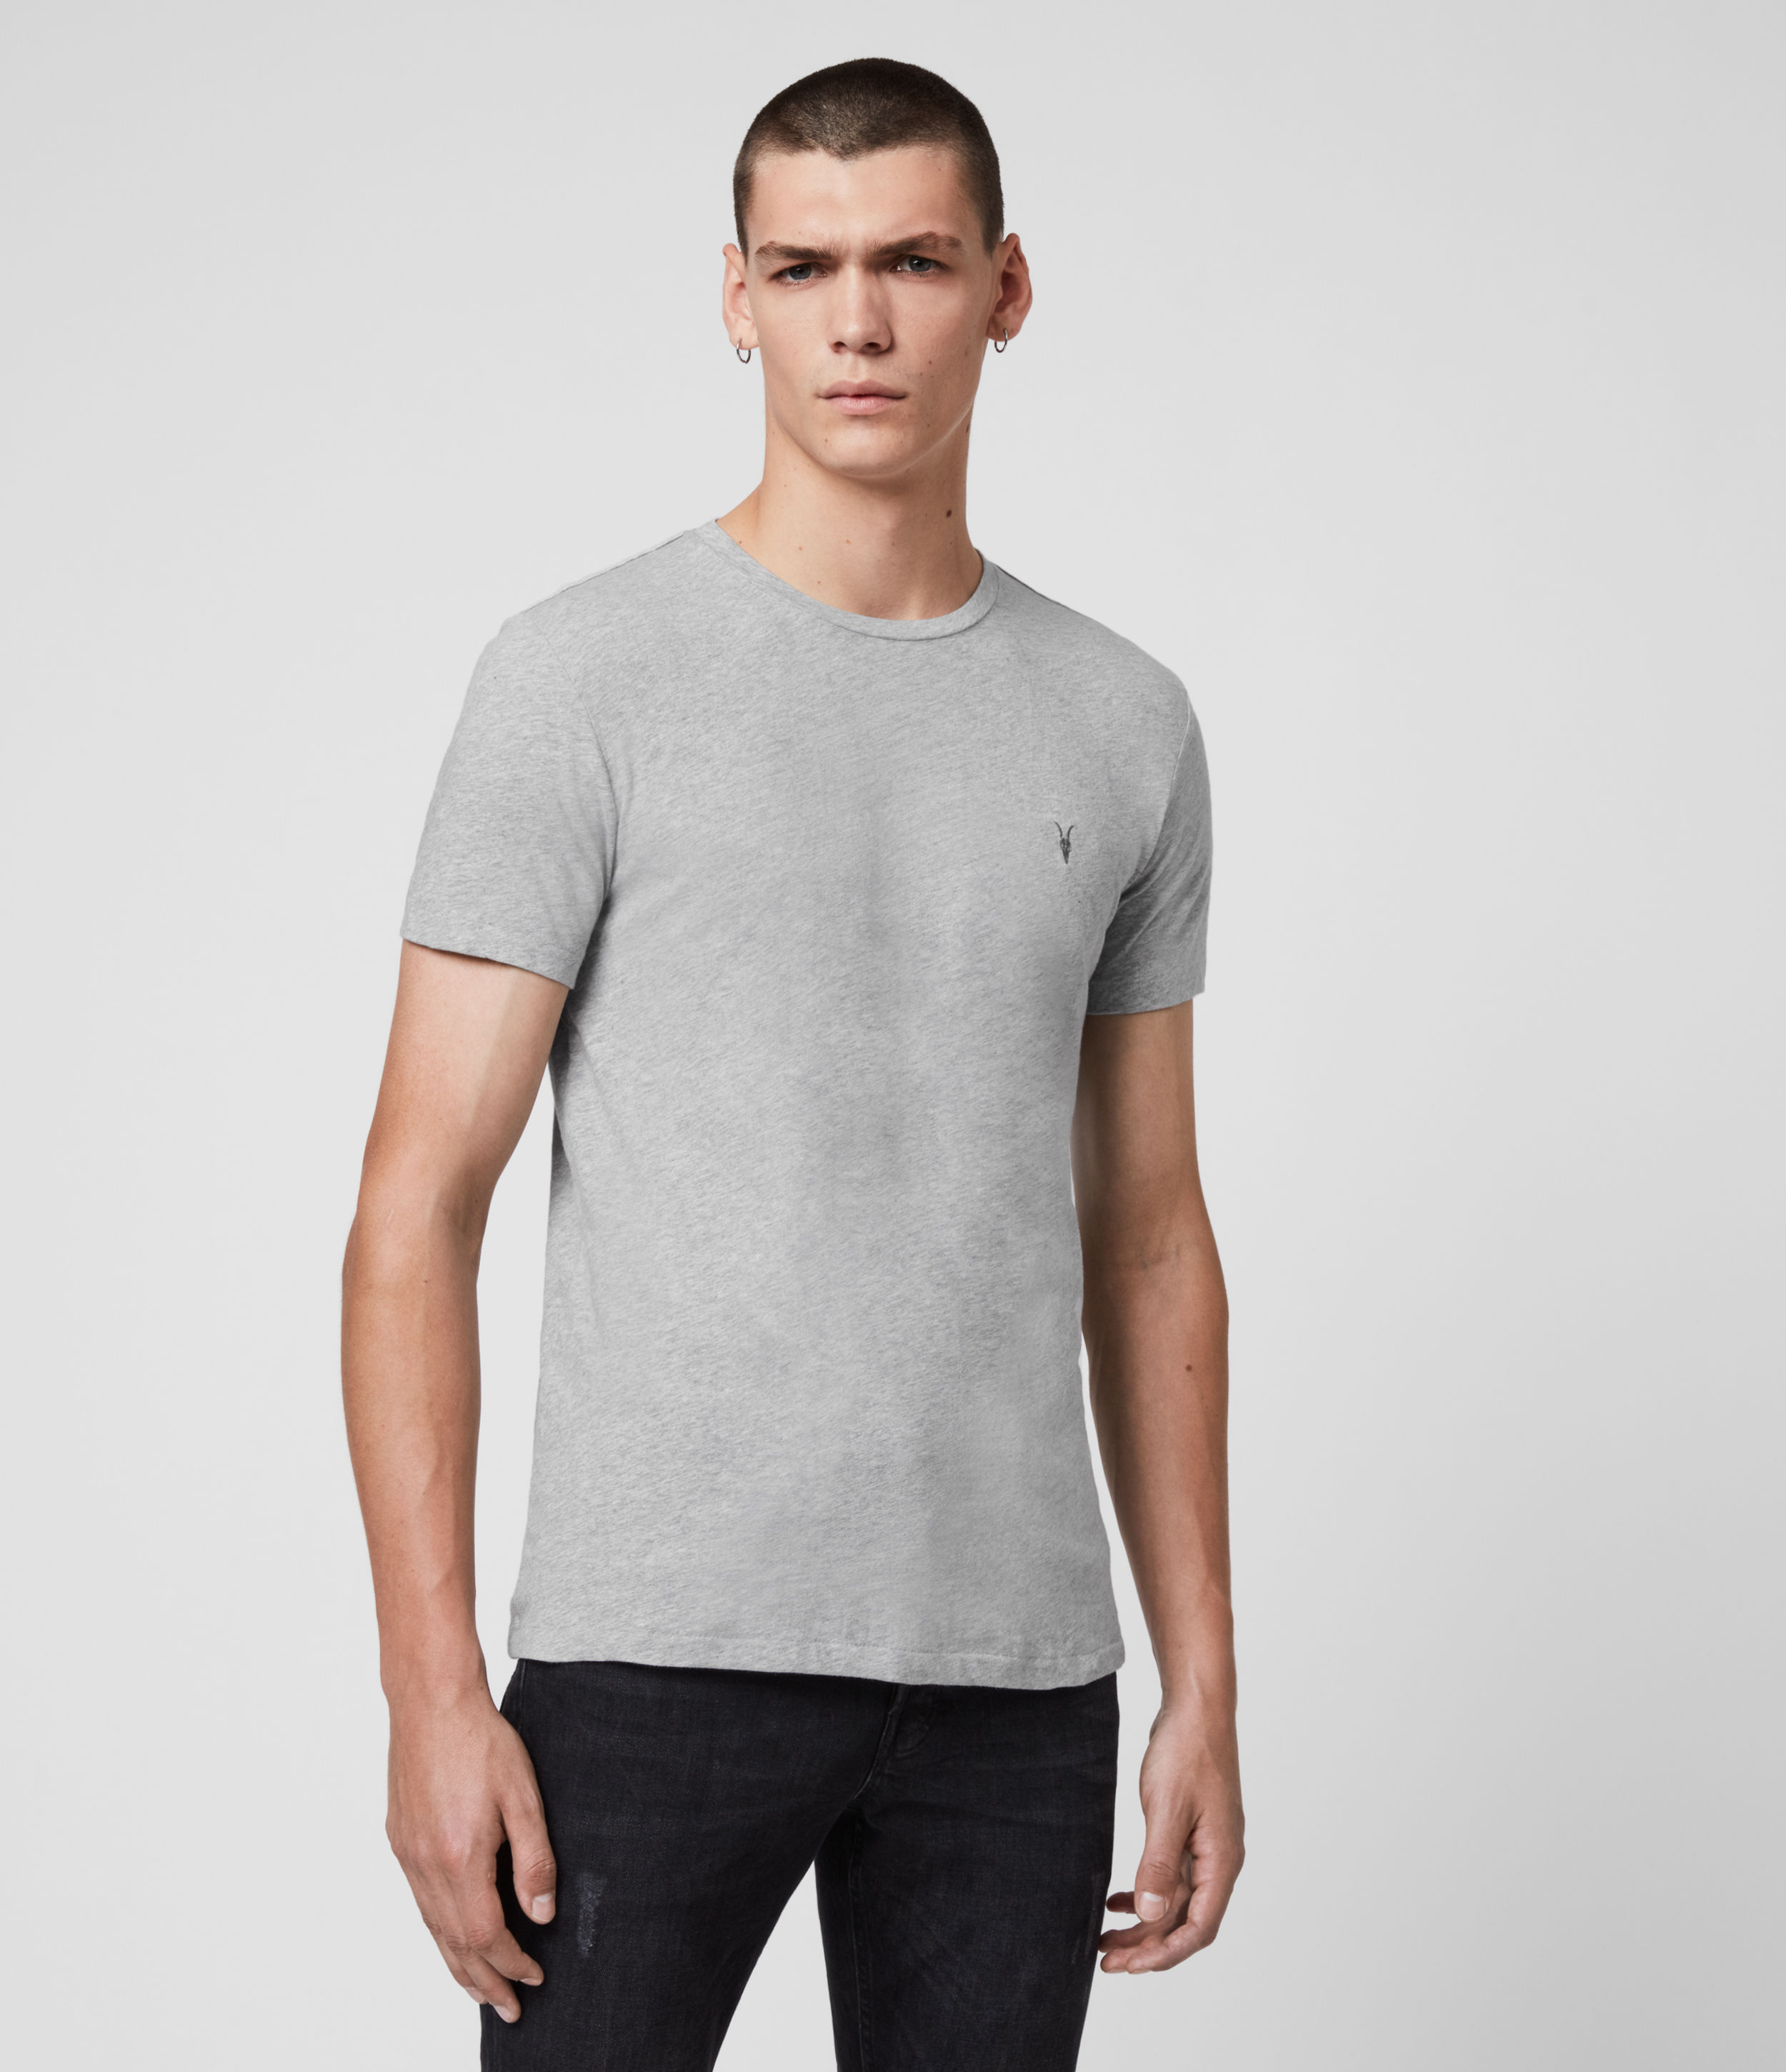 AllSaints Men's Soft Cotton Slim Fit Regular Tonic Short Sleeve Crew T-Shirt, Grey, Size: M